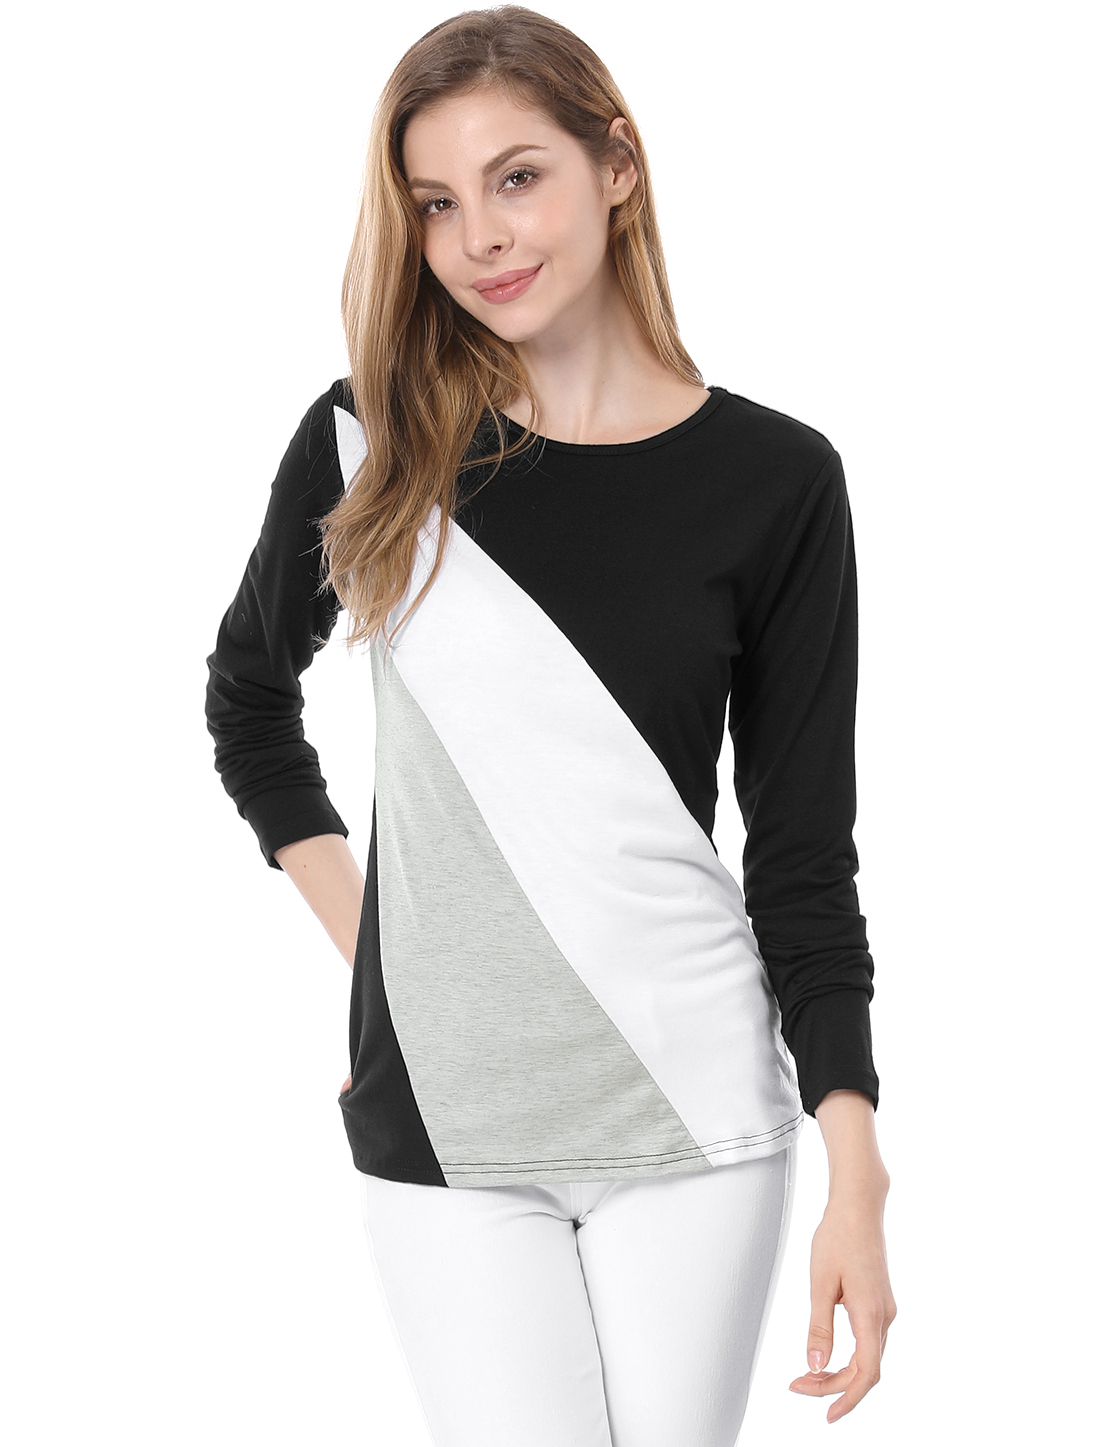 Women Color Block Round Neck Shirt Top Black White S